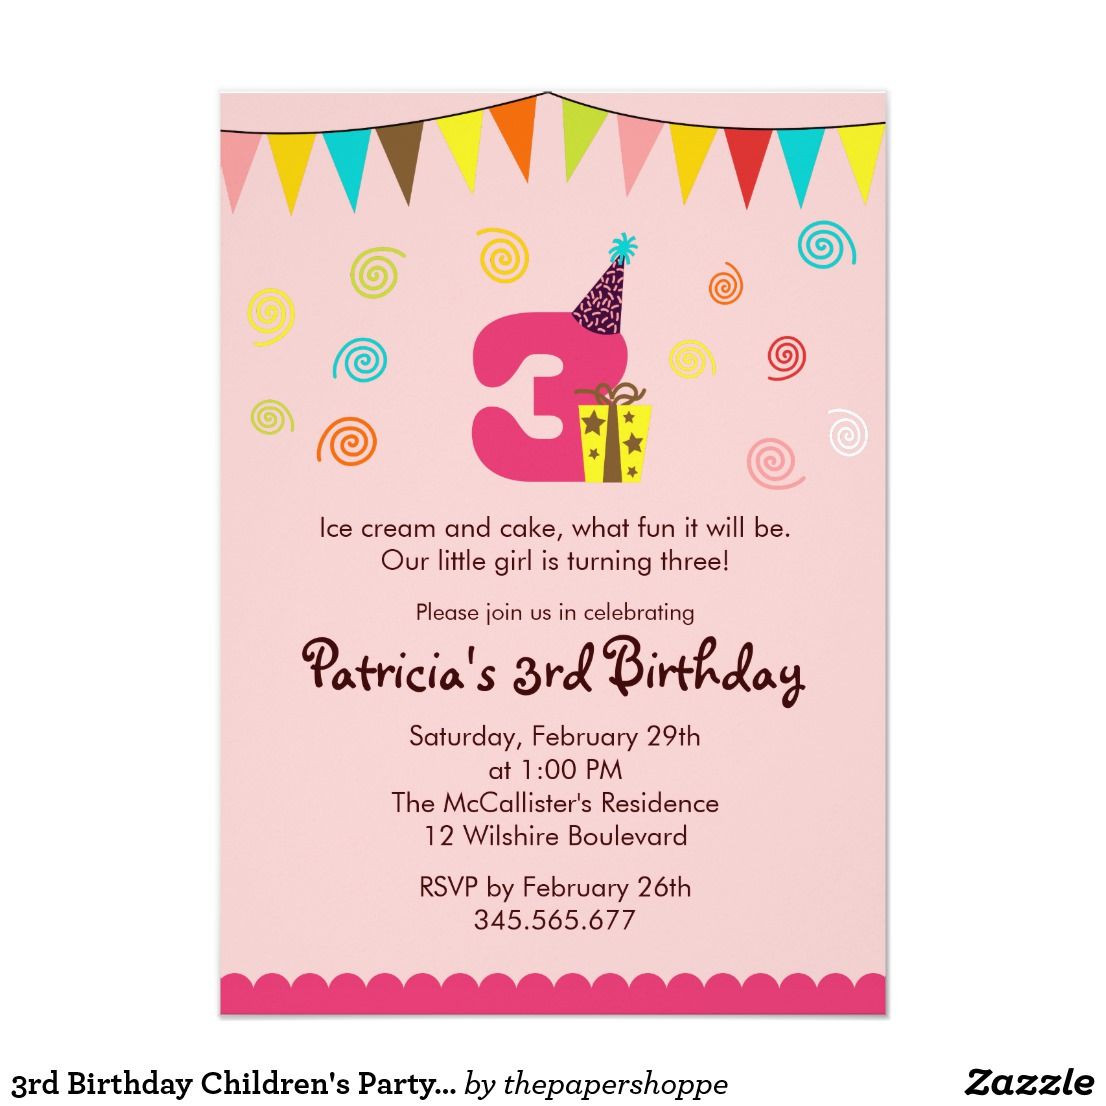 Best ideas about 3rd Birthday Invitations . Save or Pin 3rd Birthday Children s Party Invitation Now.